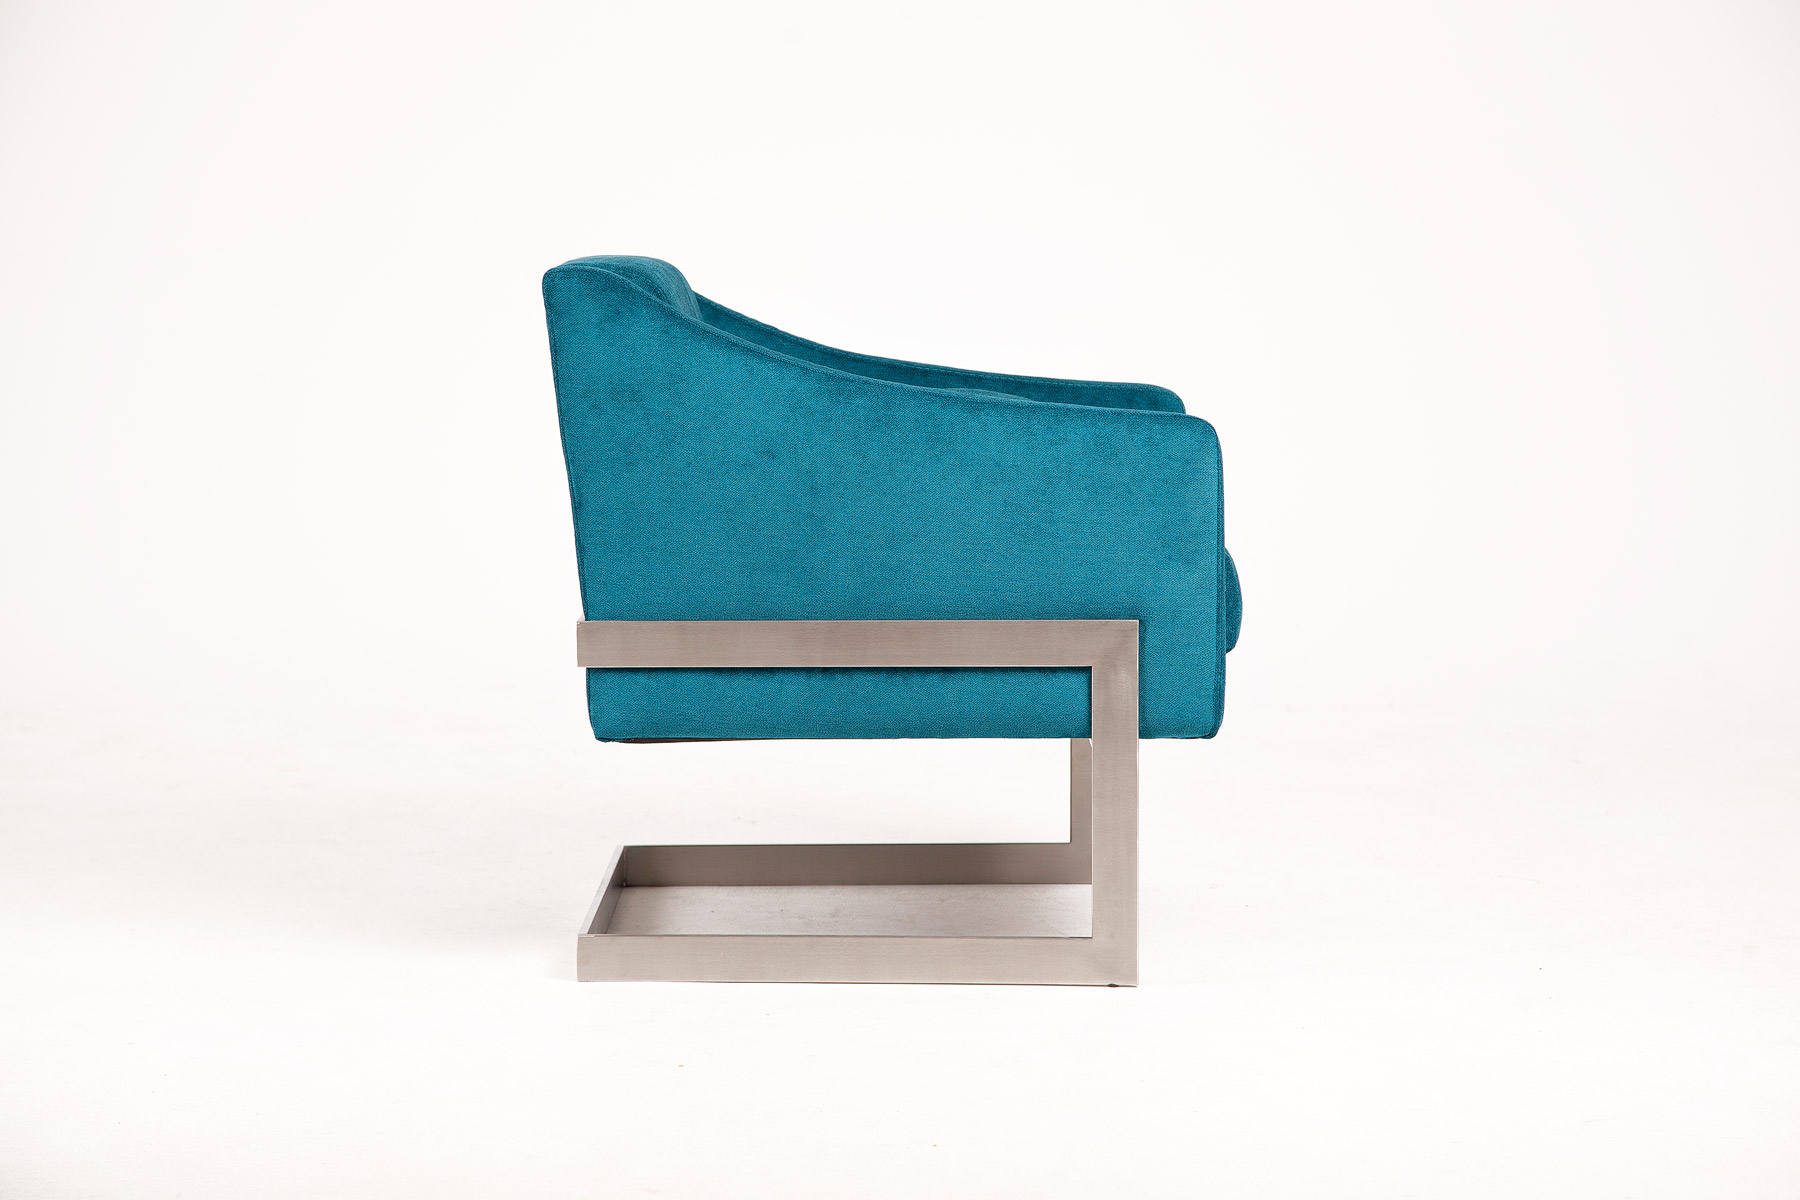 Luxury blue armchair in luxury fabric bespoke with steel legs size 69/70/77cm by Urvission Interiors price £749